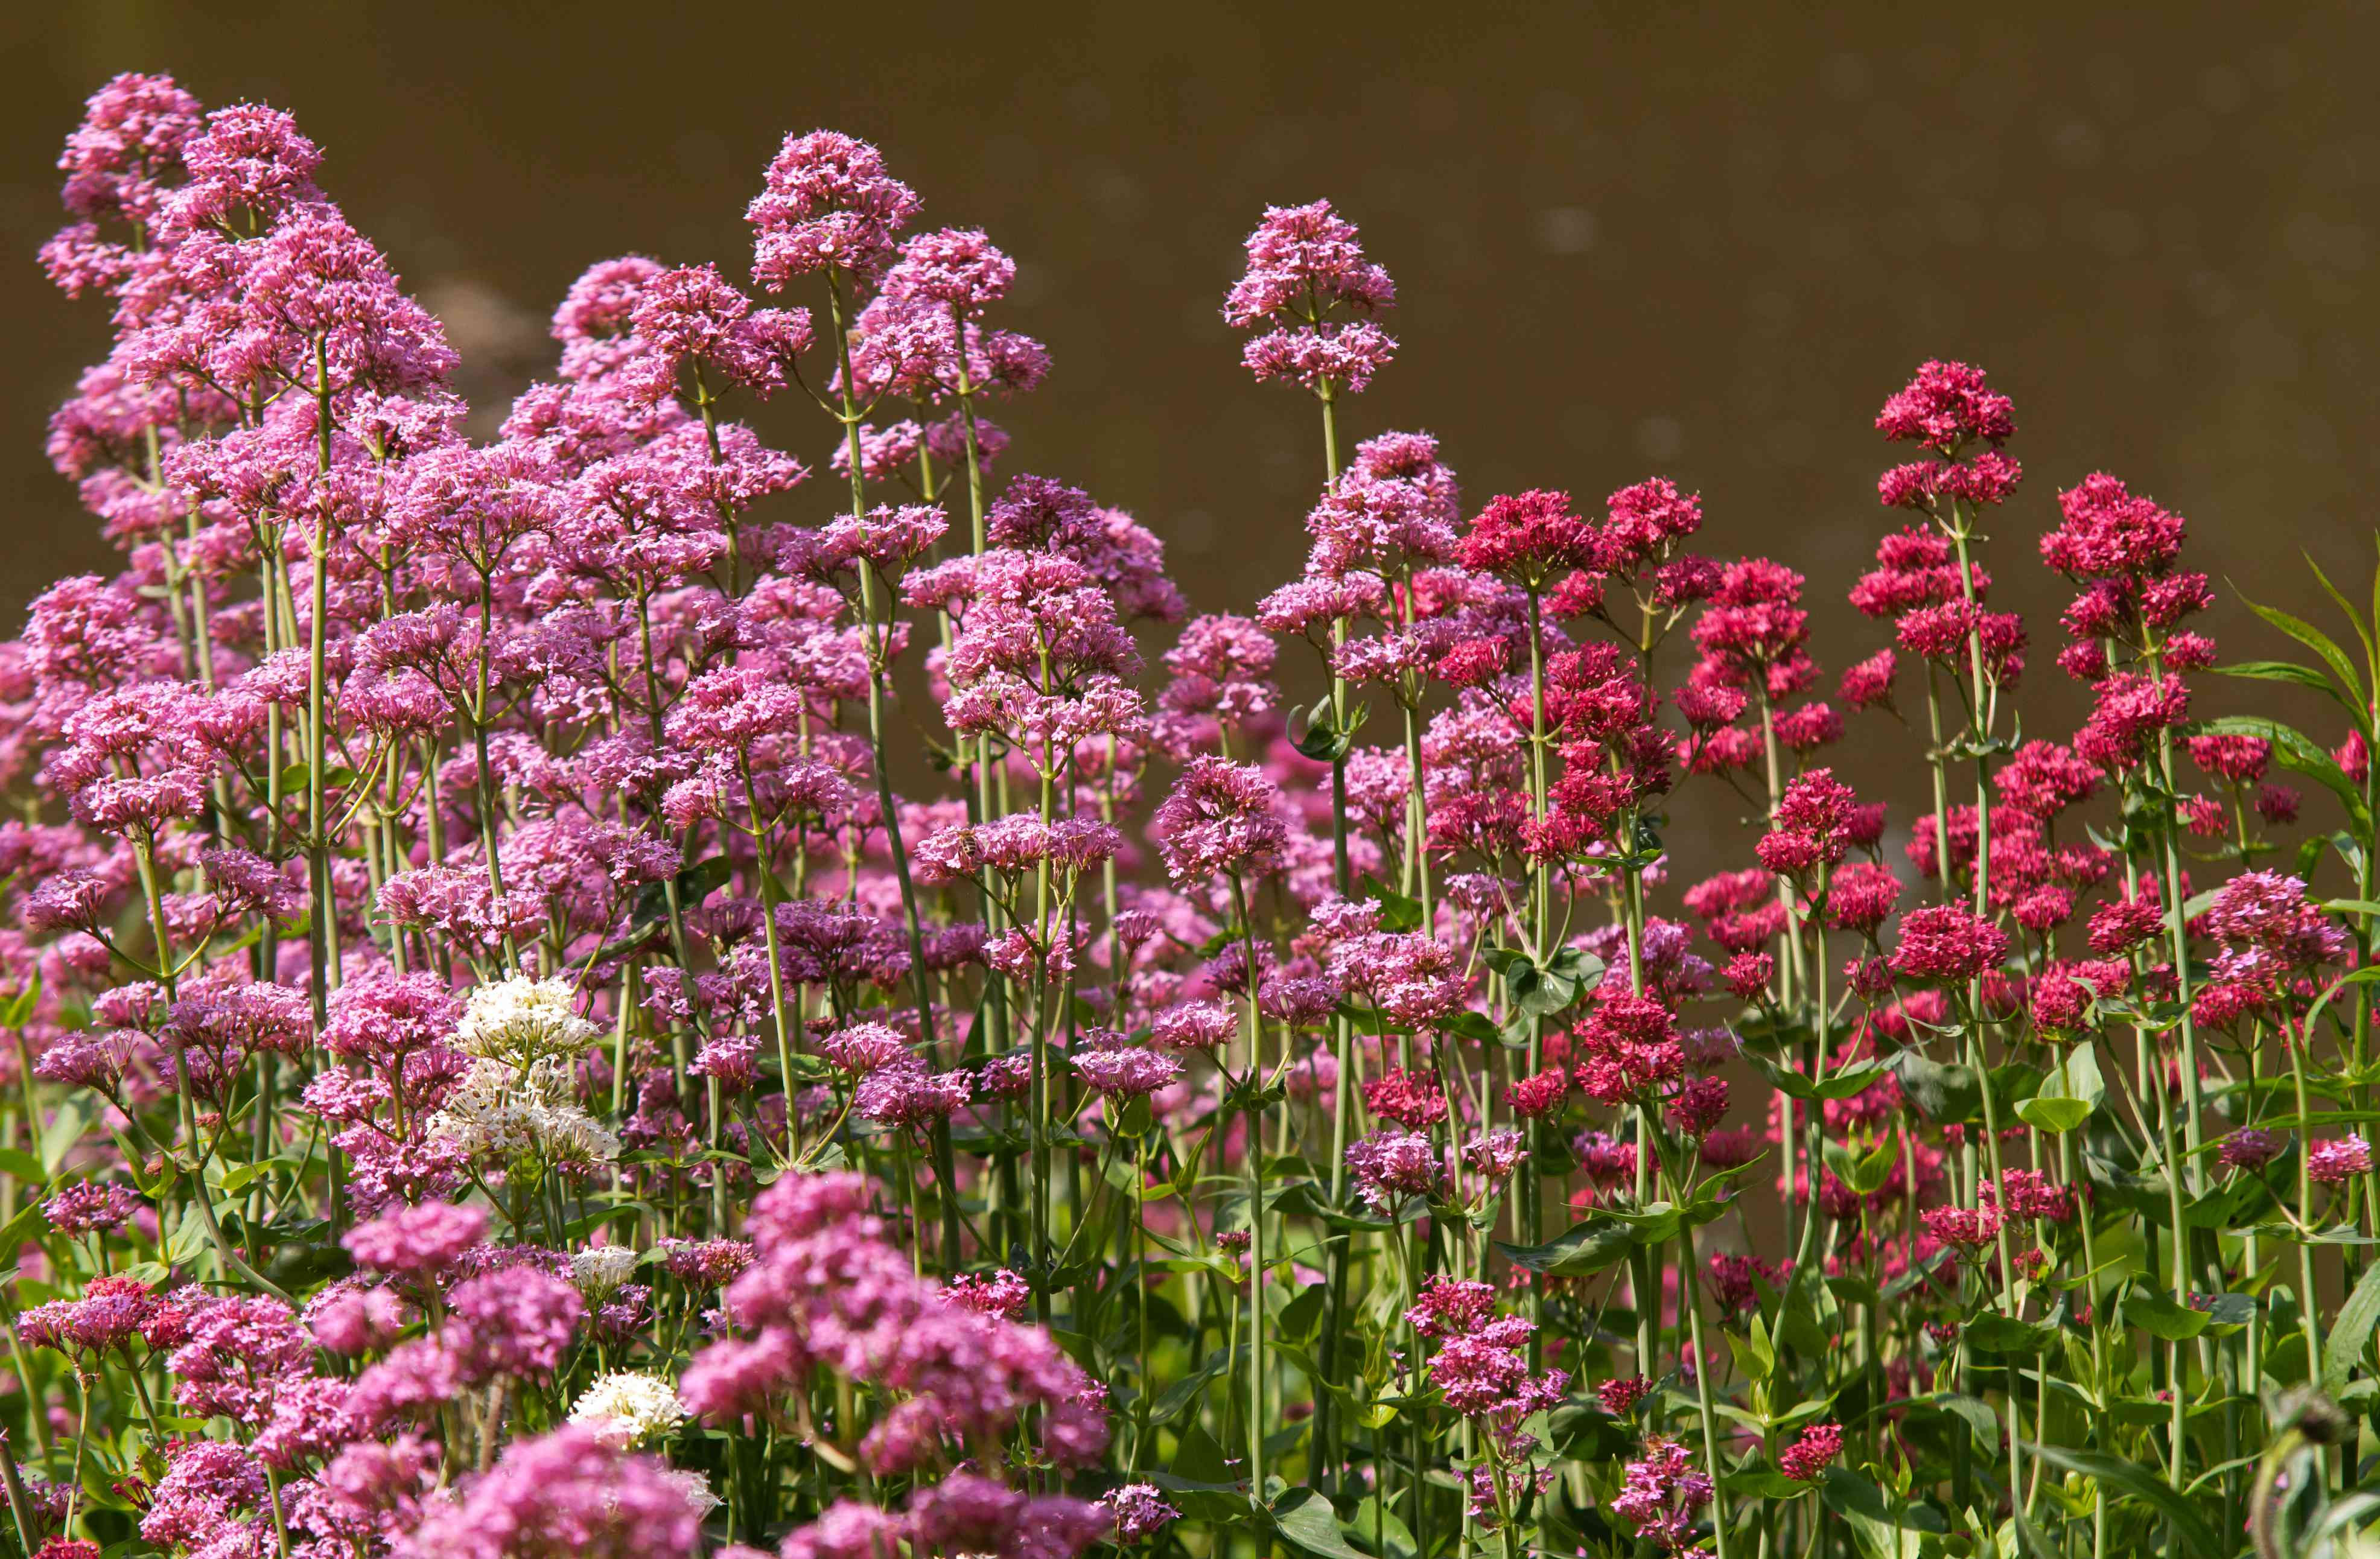 Red valerian stems with pink and red flowers